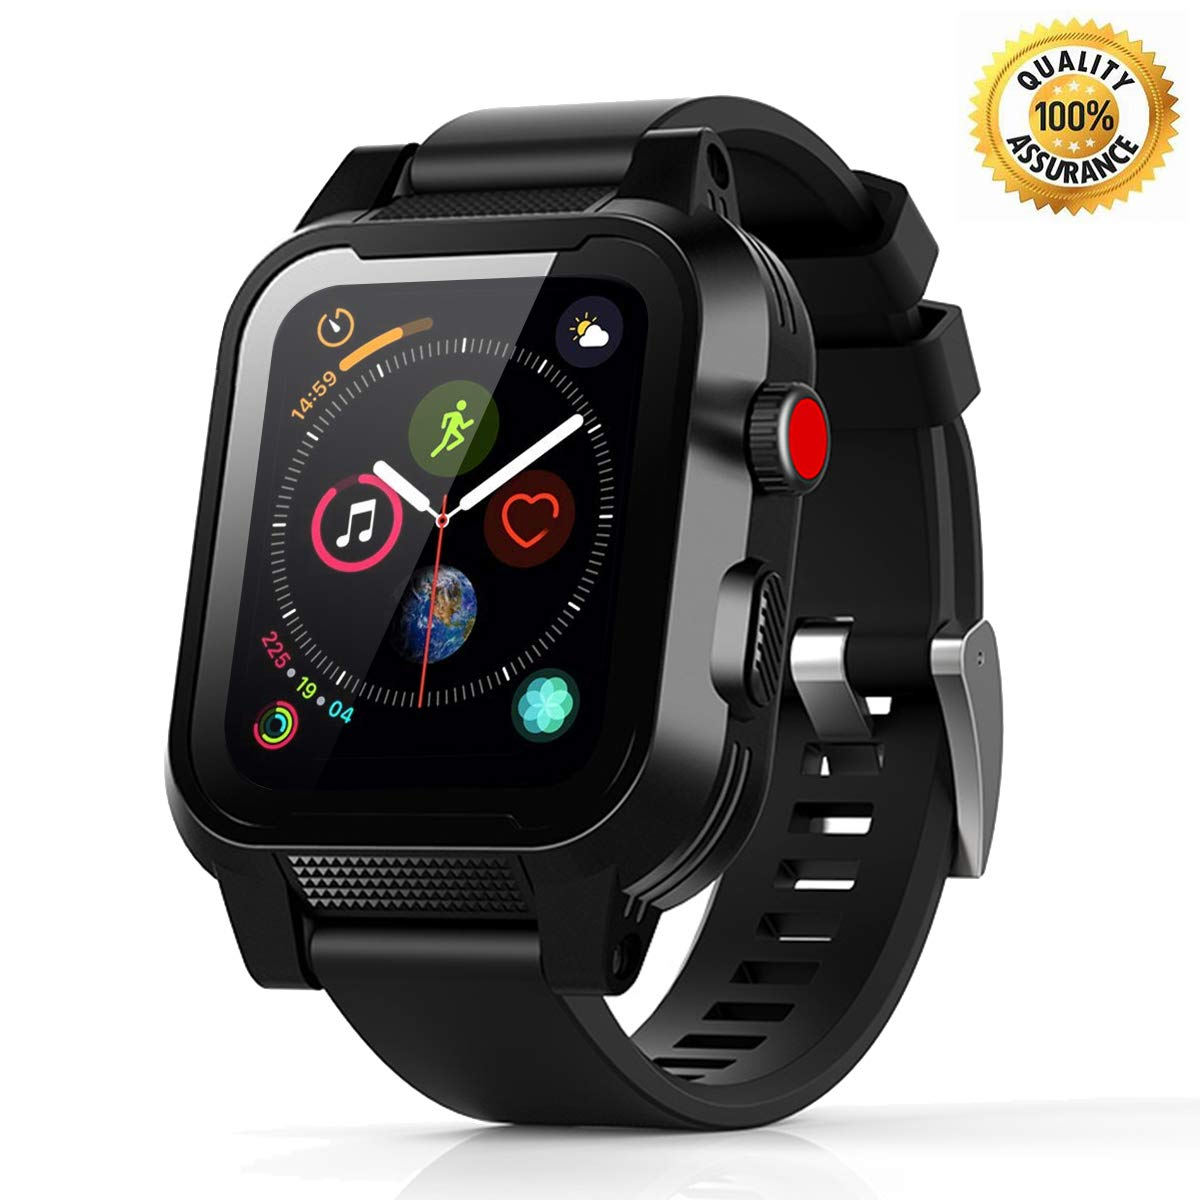 Waterproof Apple Watch Case - 42mm Waterproof iWatch Series 2 & 3 Case Bands Apple Watch 3 Waterproof Case 42mm iWatch Series 2 and 3 Case 42mm Apple Watch Bands Full Protective Case Black for Men by Transy